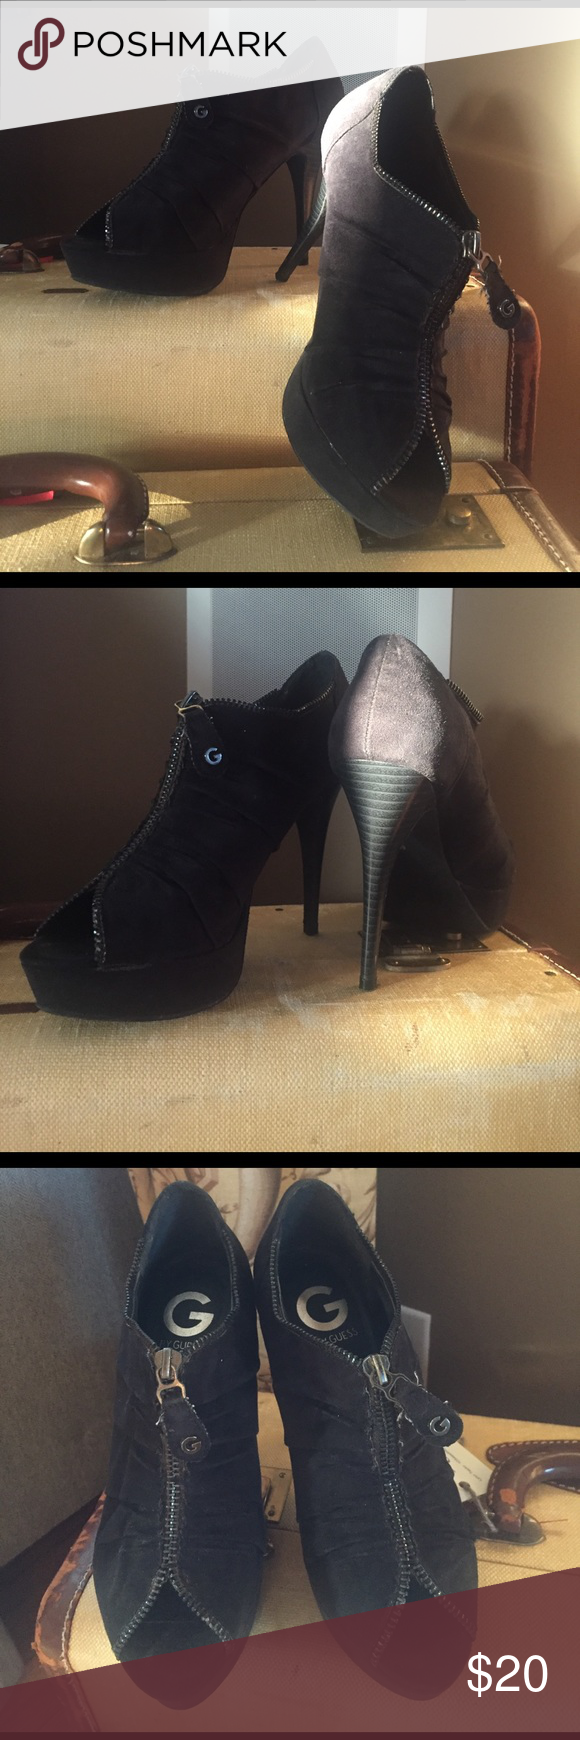 "Guess platform booties Black faux suede peep toe bootie. Zipper detail. 4.5"" heel 1"" platform. Barely worn size 6 but fits like a 6.5 G by Guess Shoes Ankle Boots & Booties"